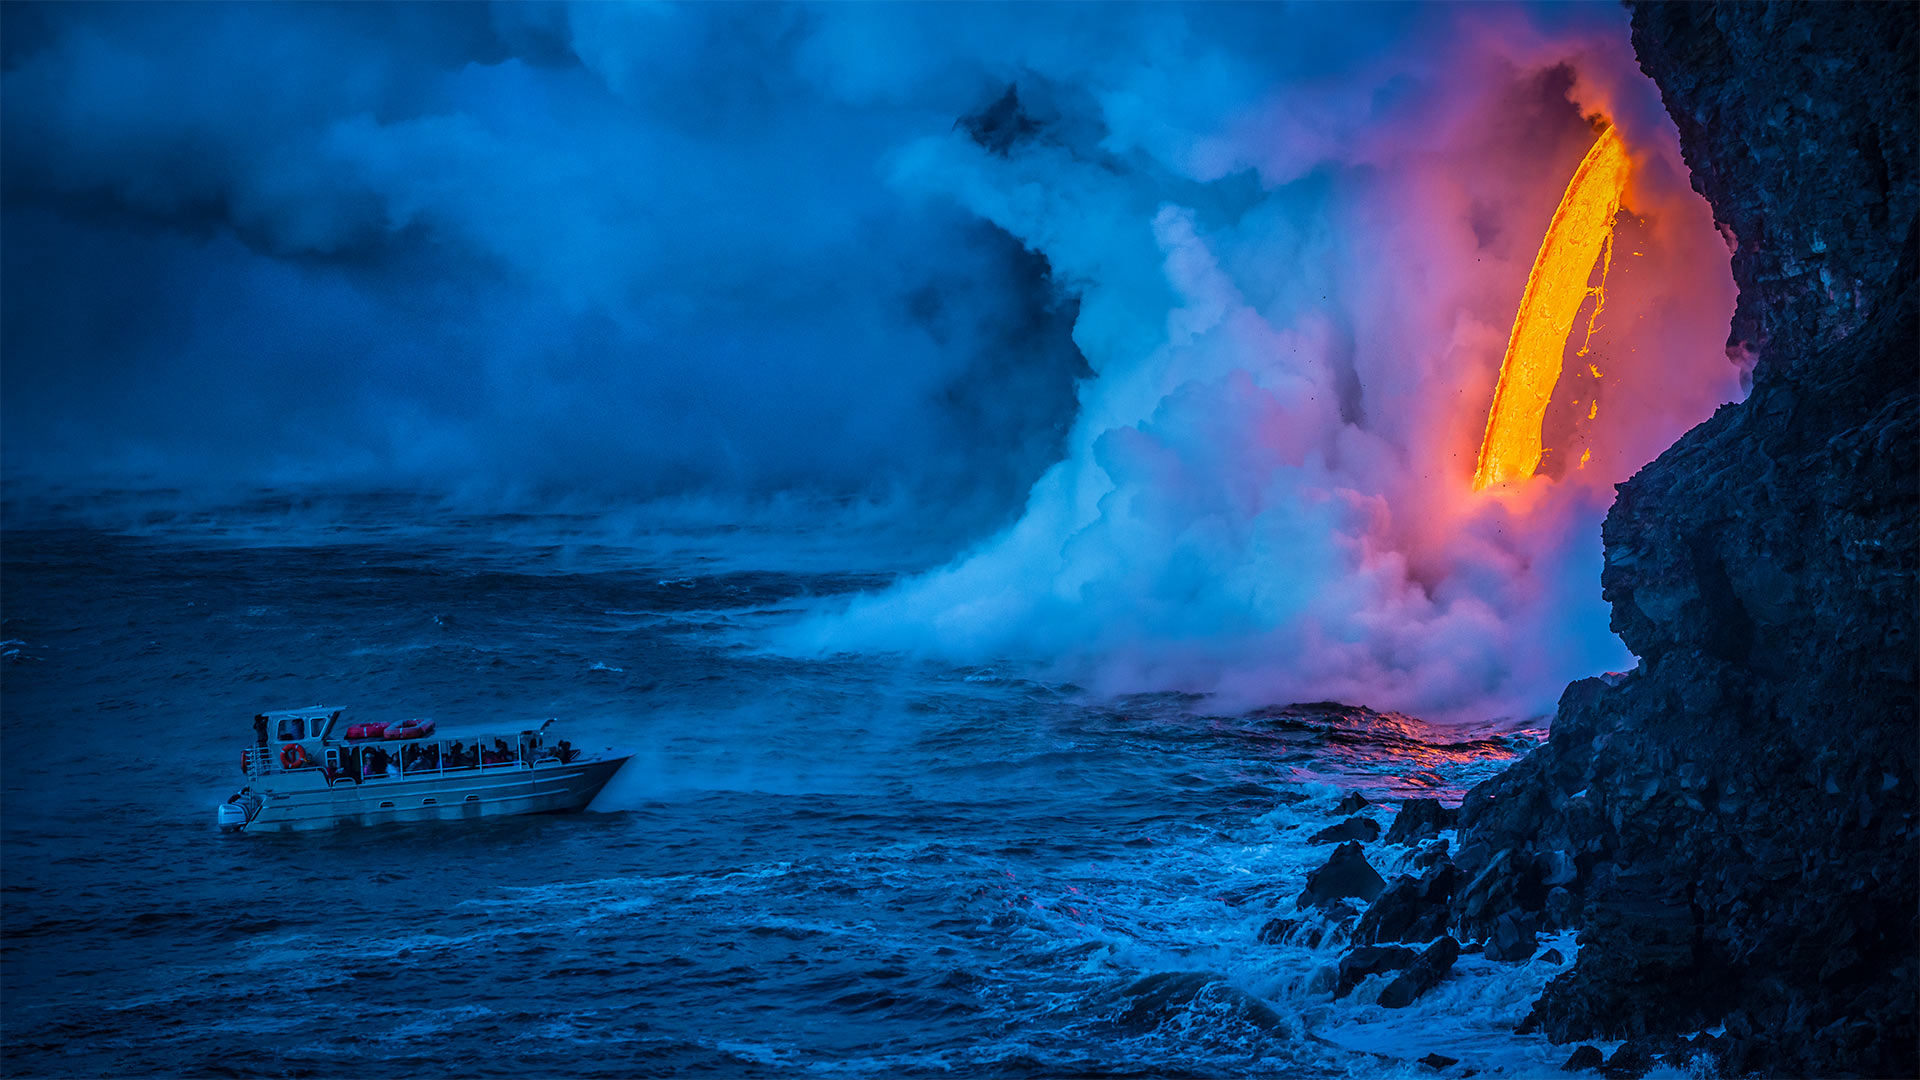 A lava flow hits water as a tour boat passes, Hawaii Volcanoes National Park (© Patrick Kelley/Getty Images)(Bing United States)